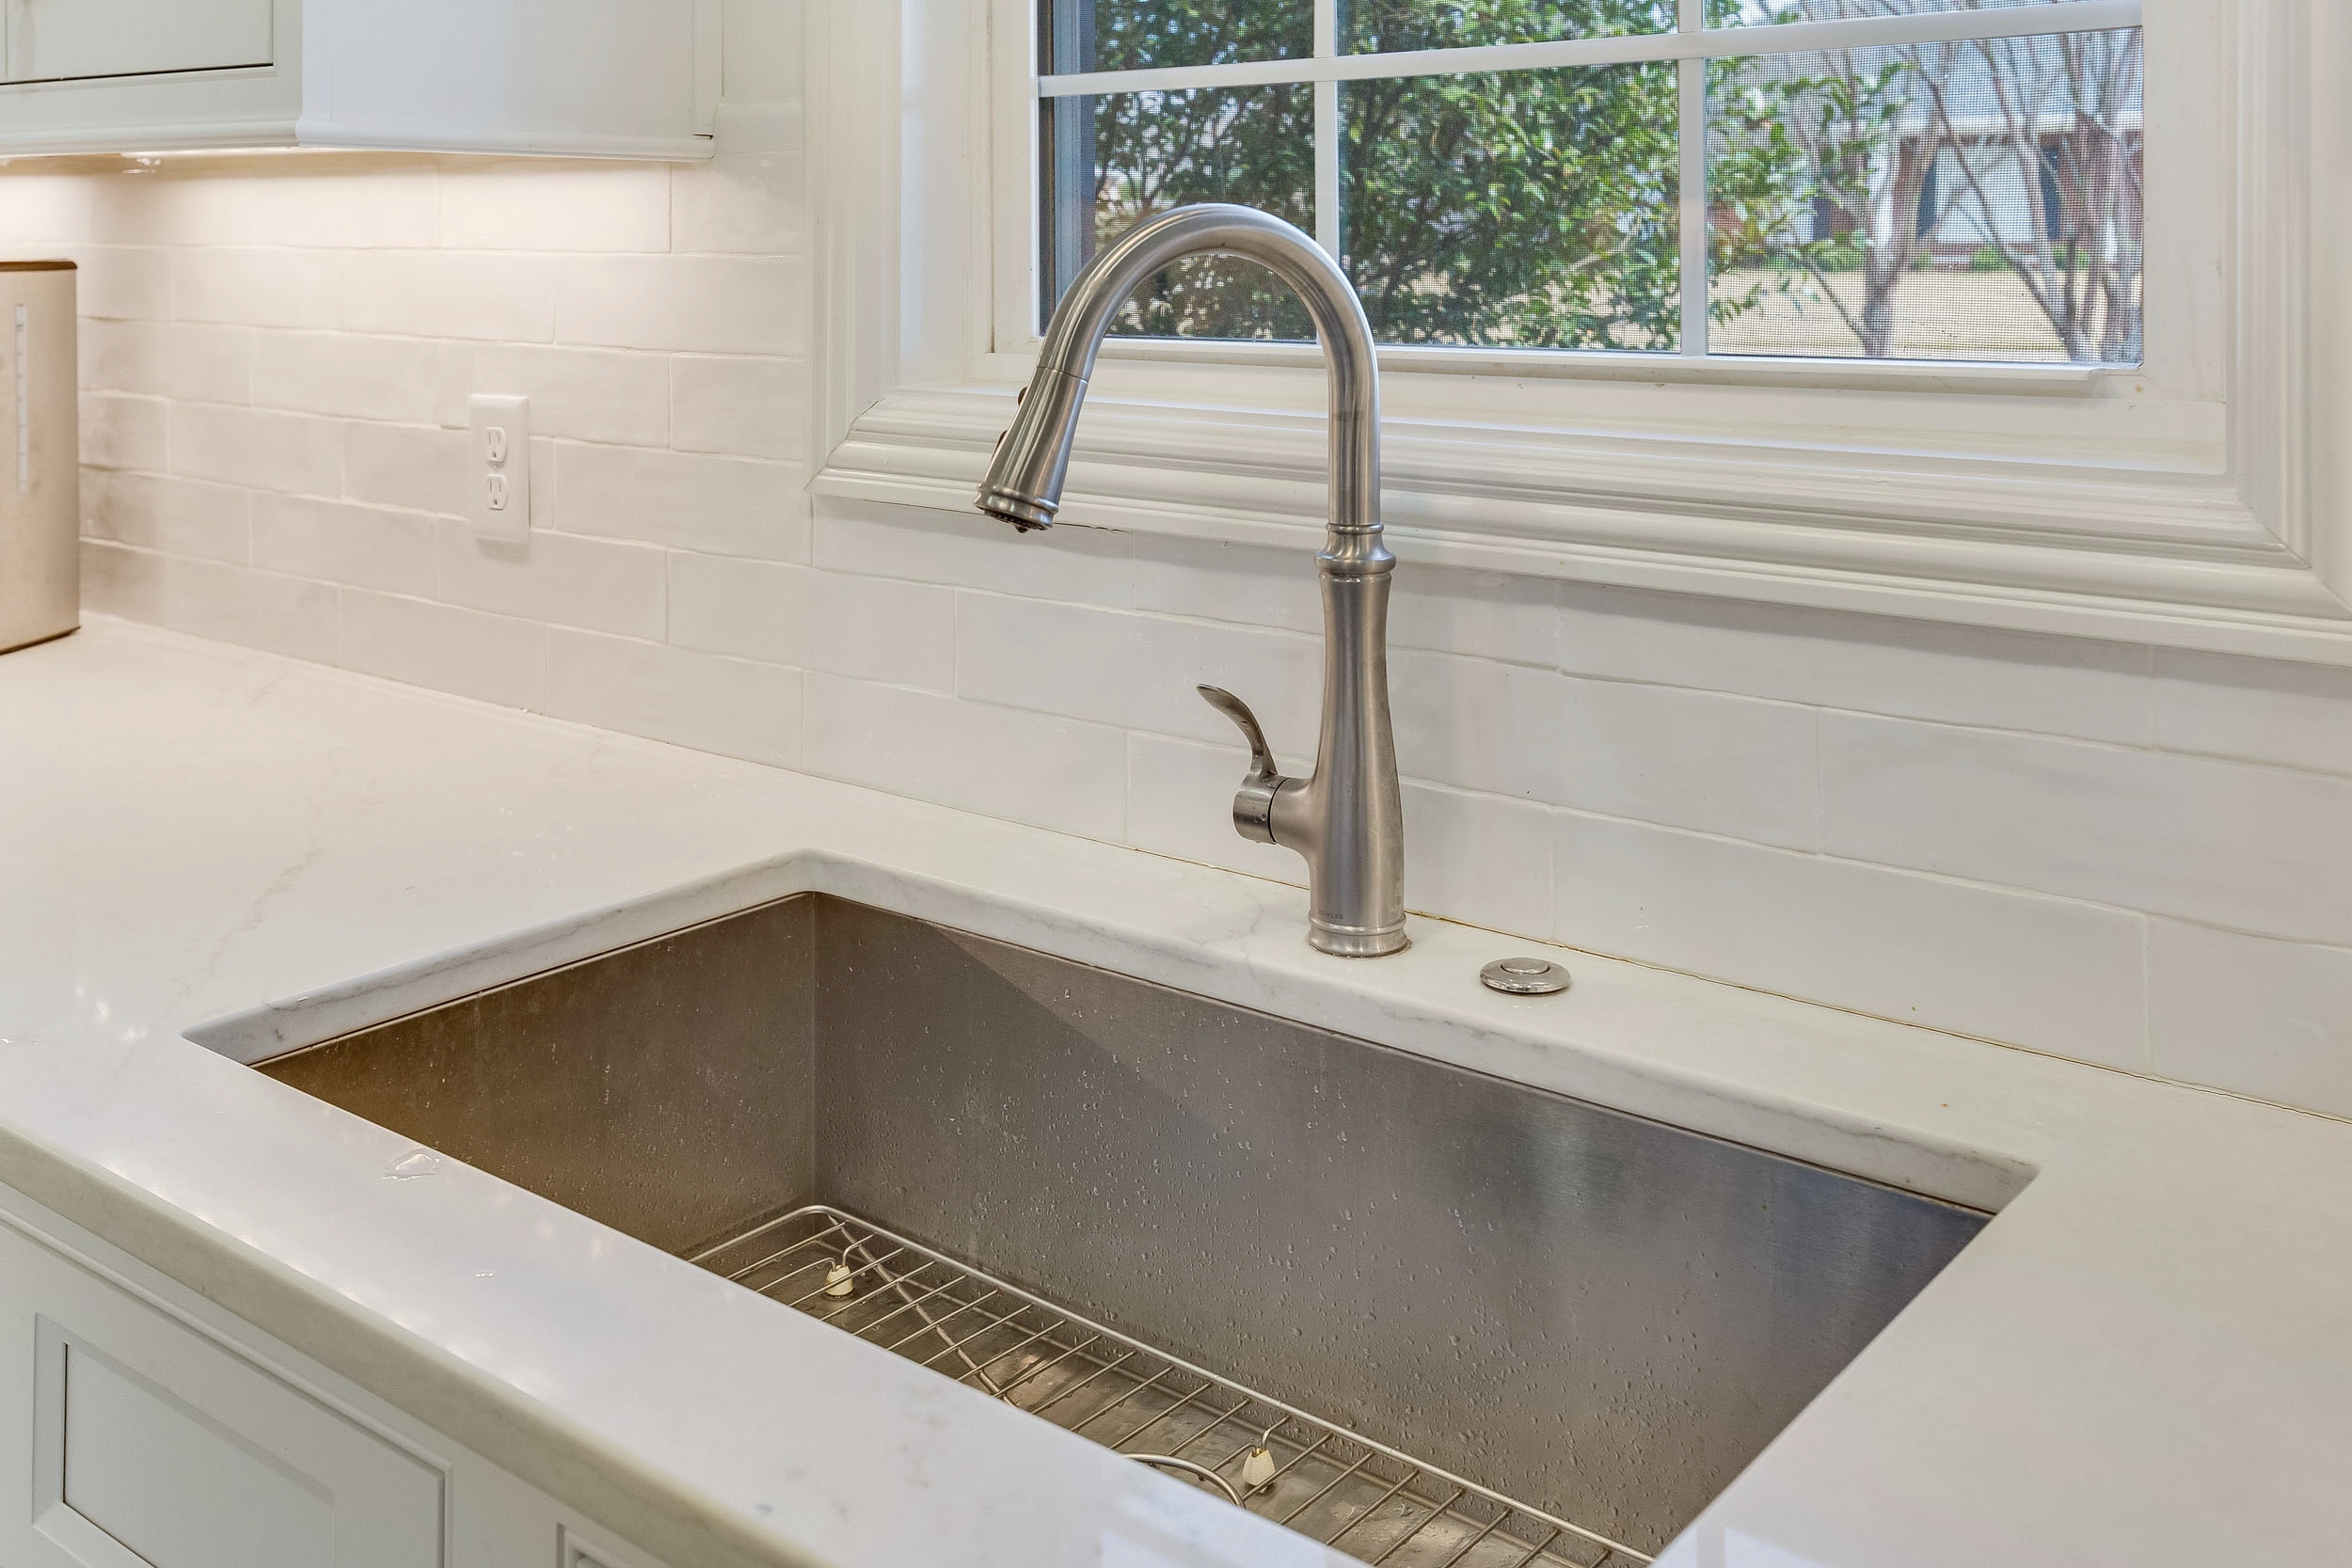 Single bowl Kohler Vault undermount stainless steel sink with push button for garbage disposal.